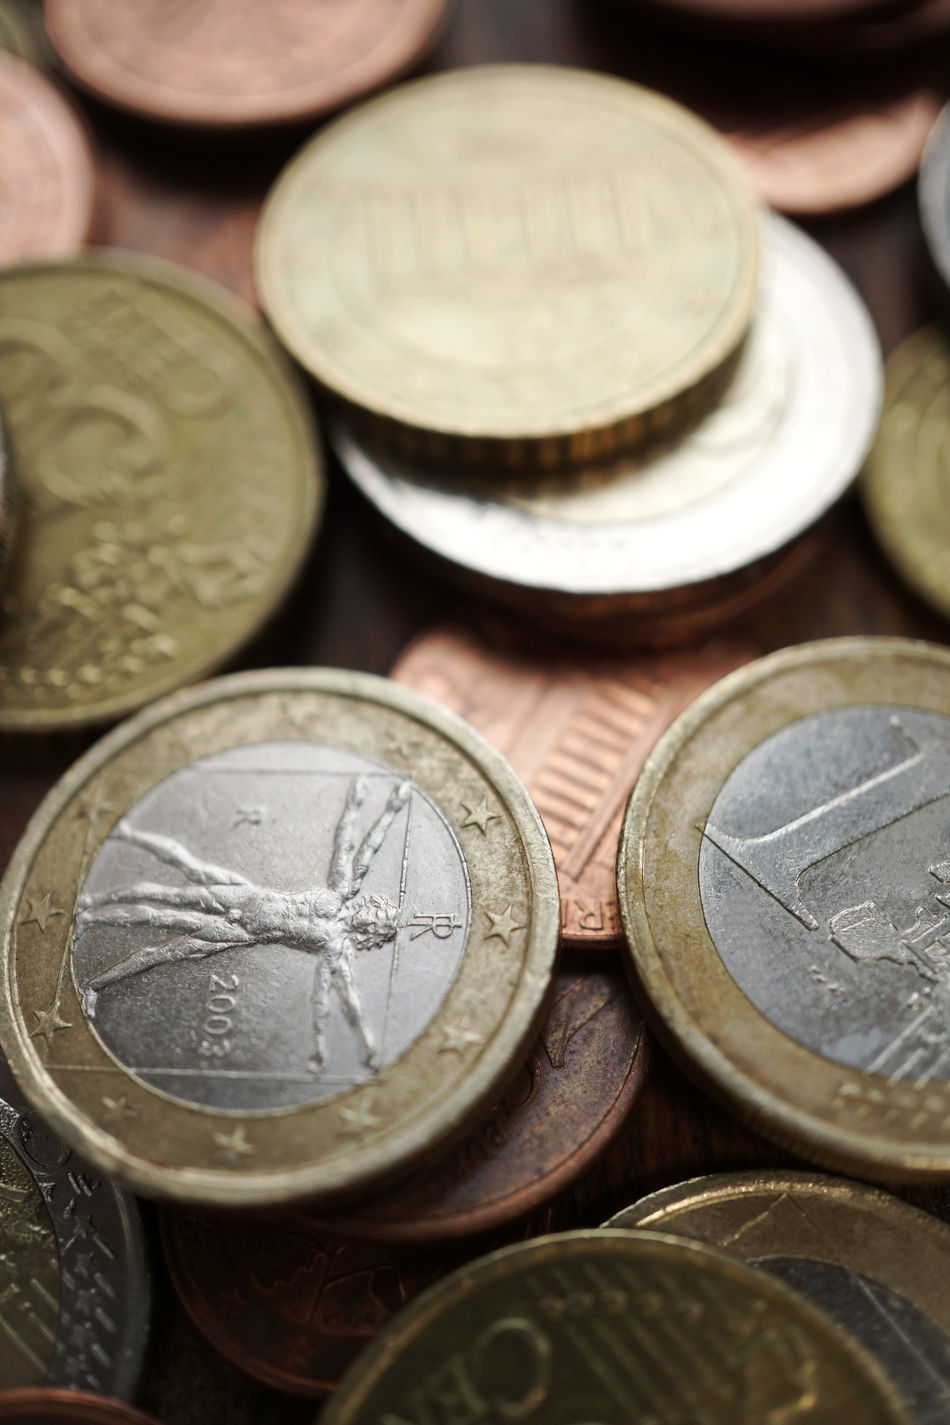 Euro coins close up Abundance Close-up Coins Currency Directly Above Euro Coins Europe High Angle View Metal Money Selective Focus Still Life